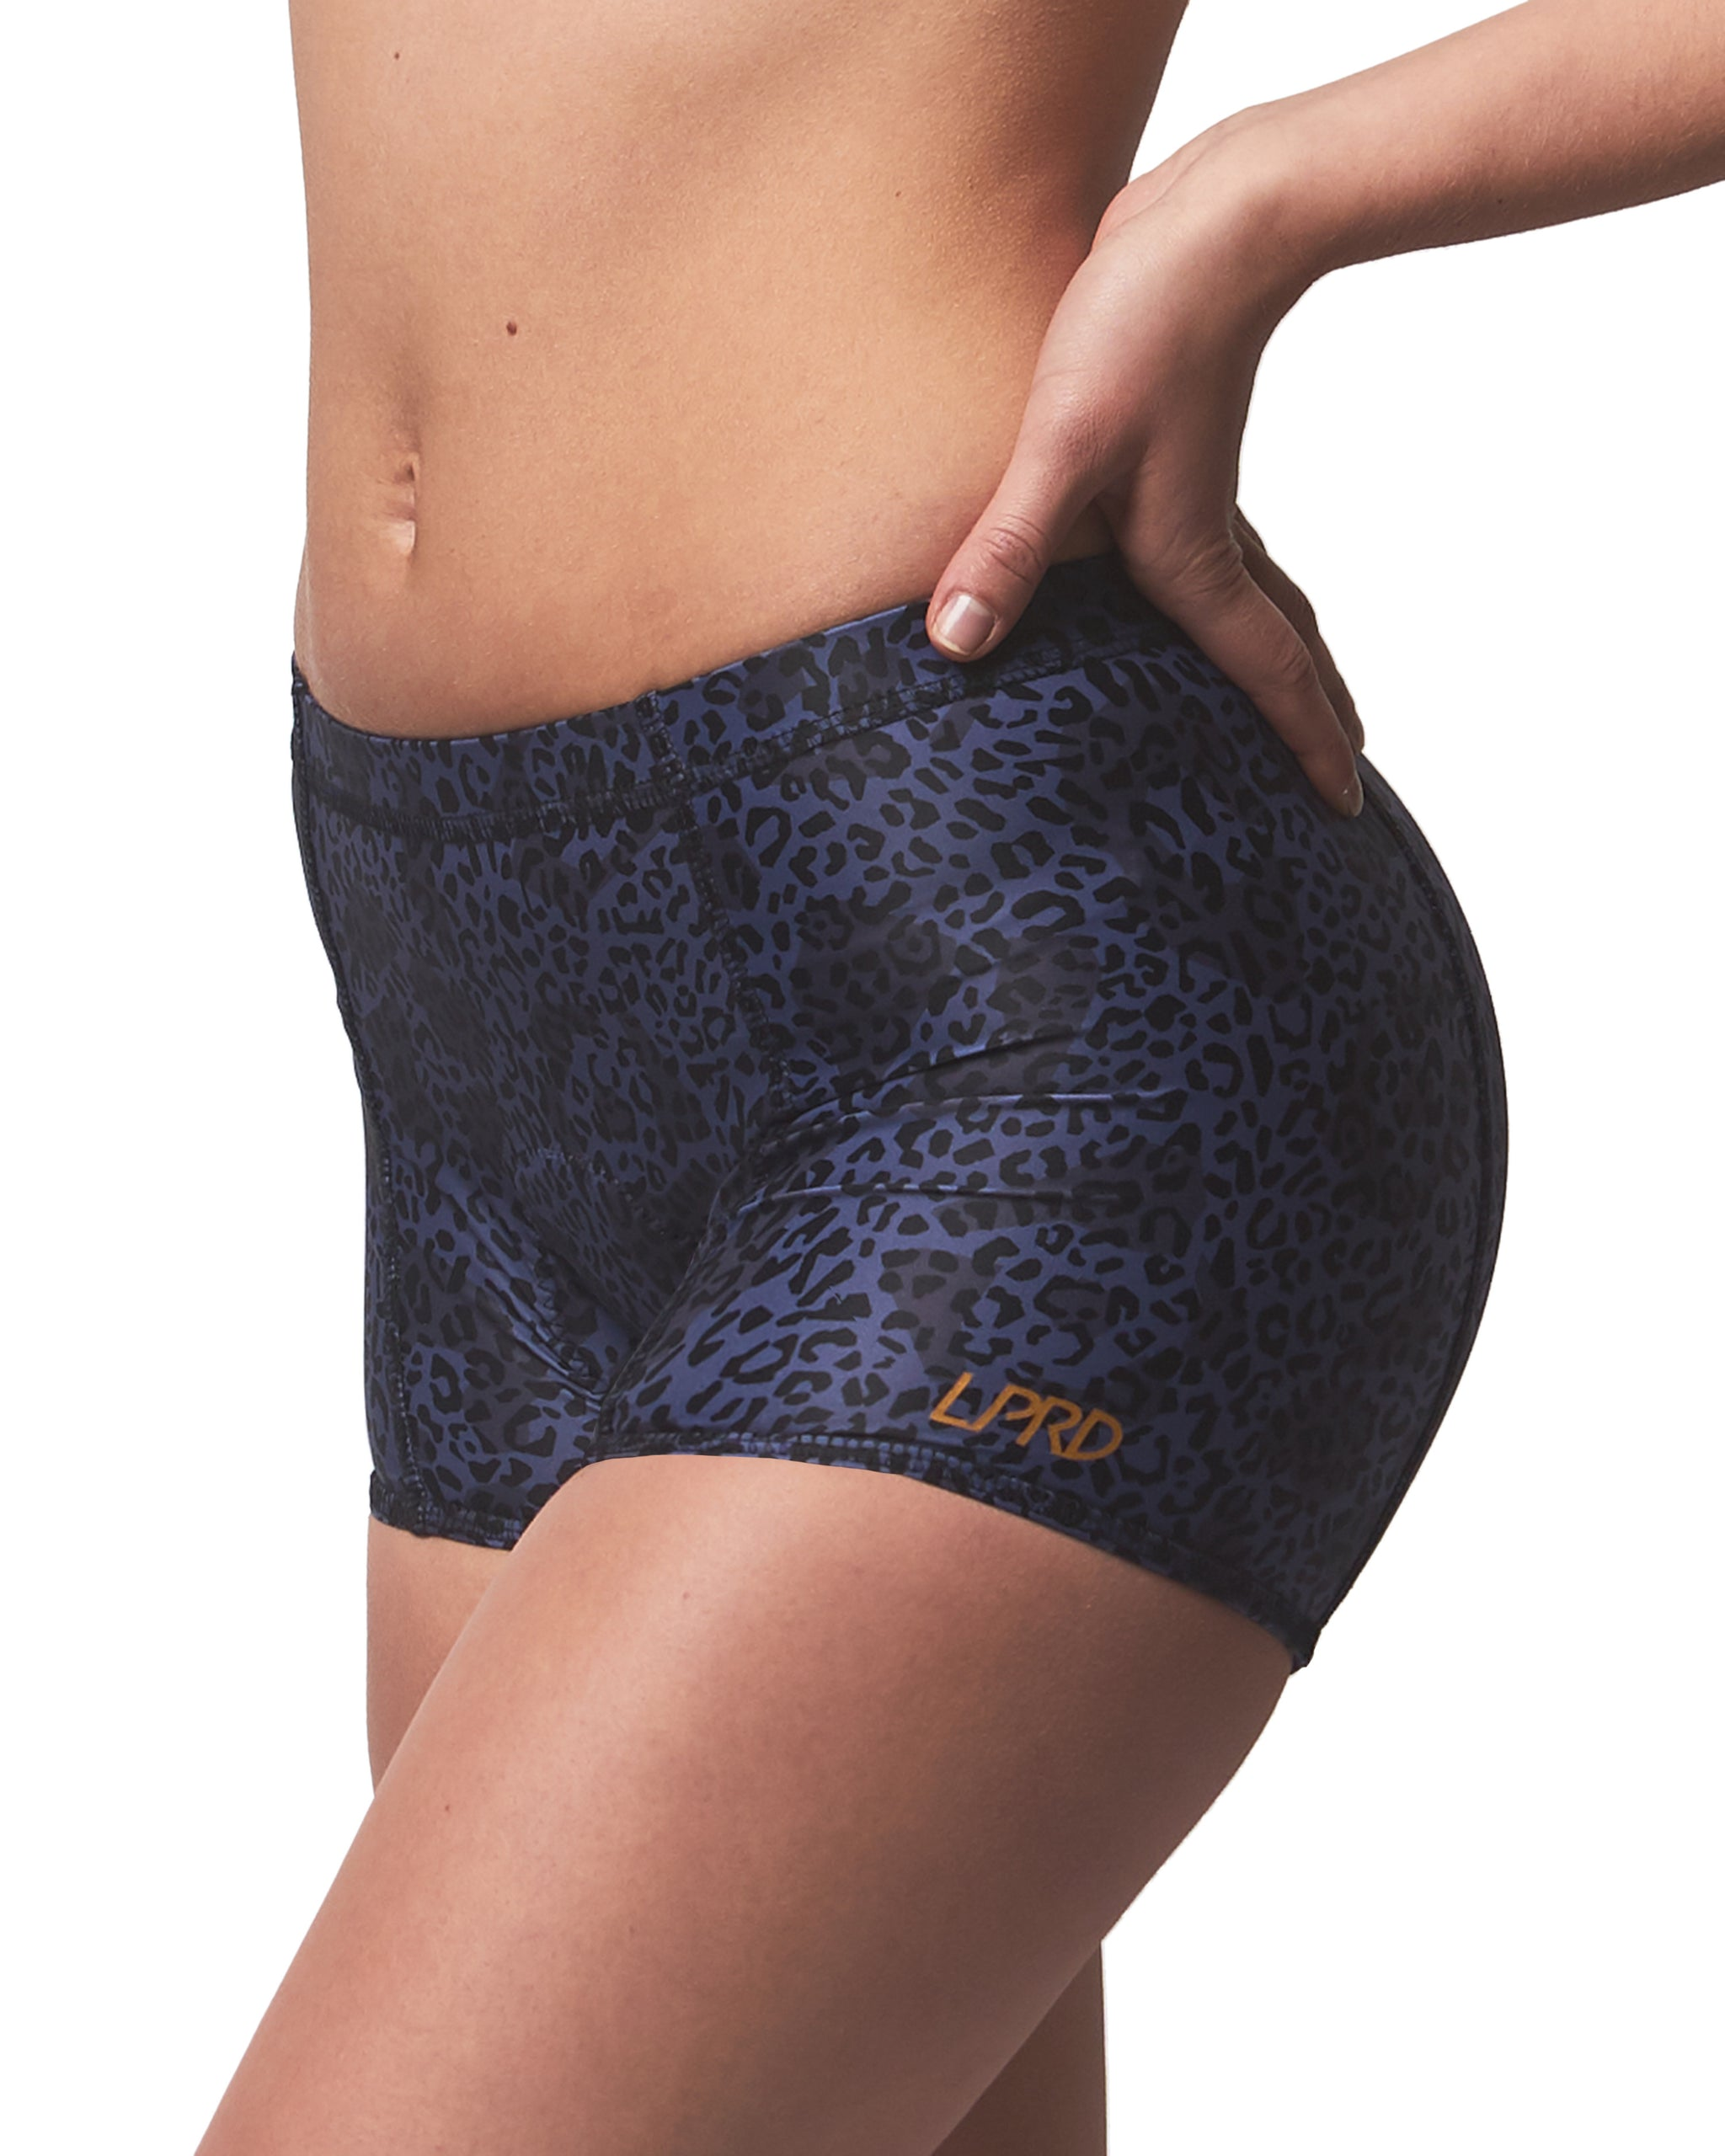 LPRD Midnight Leopard Cycling Hotpants | Side View Close